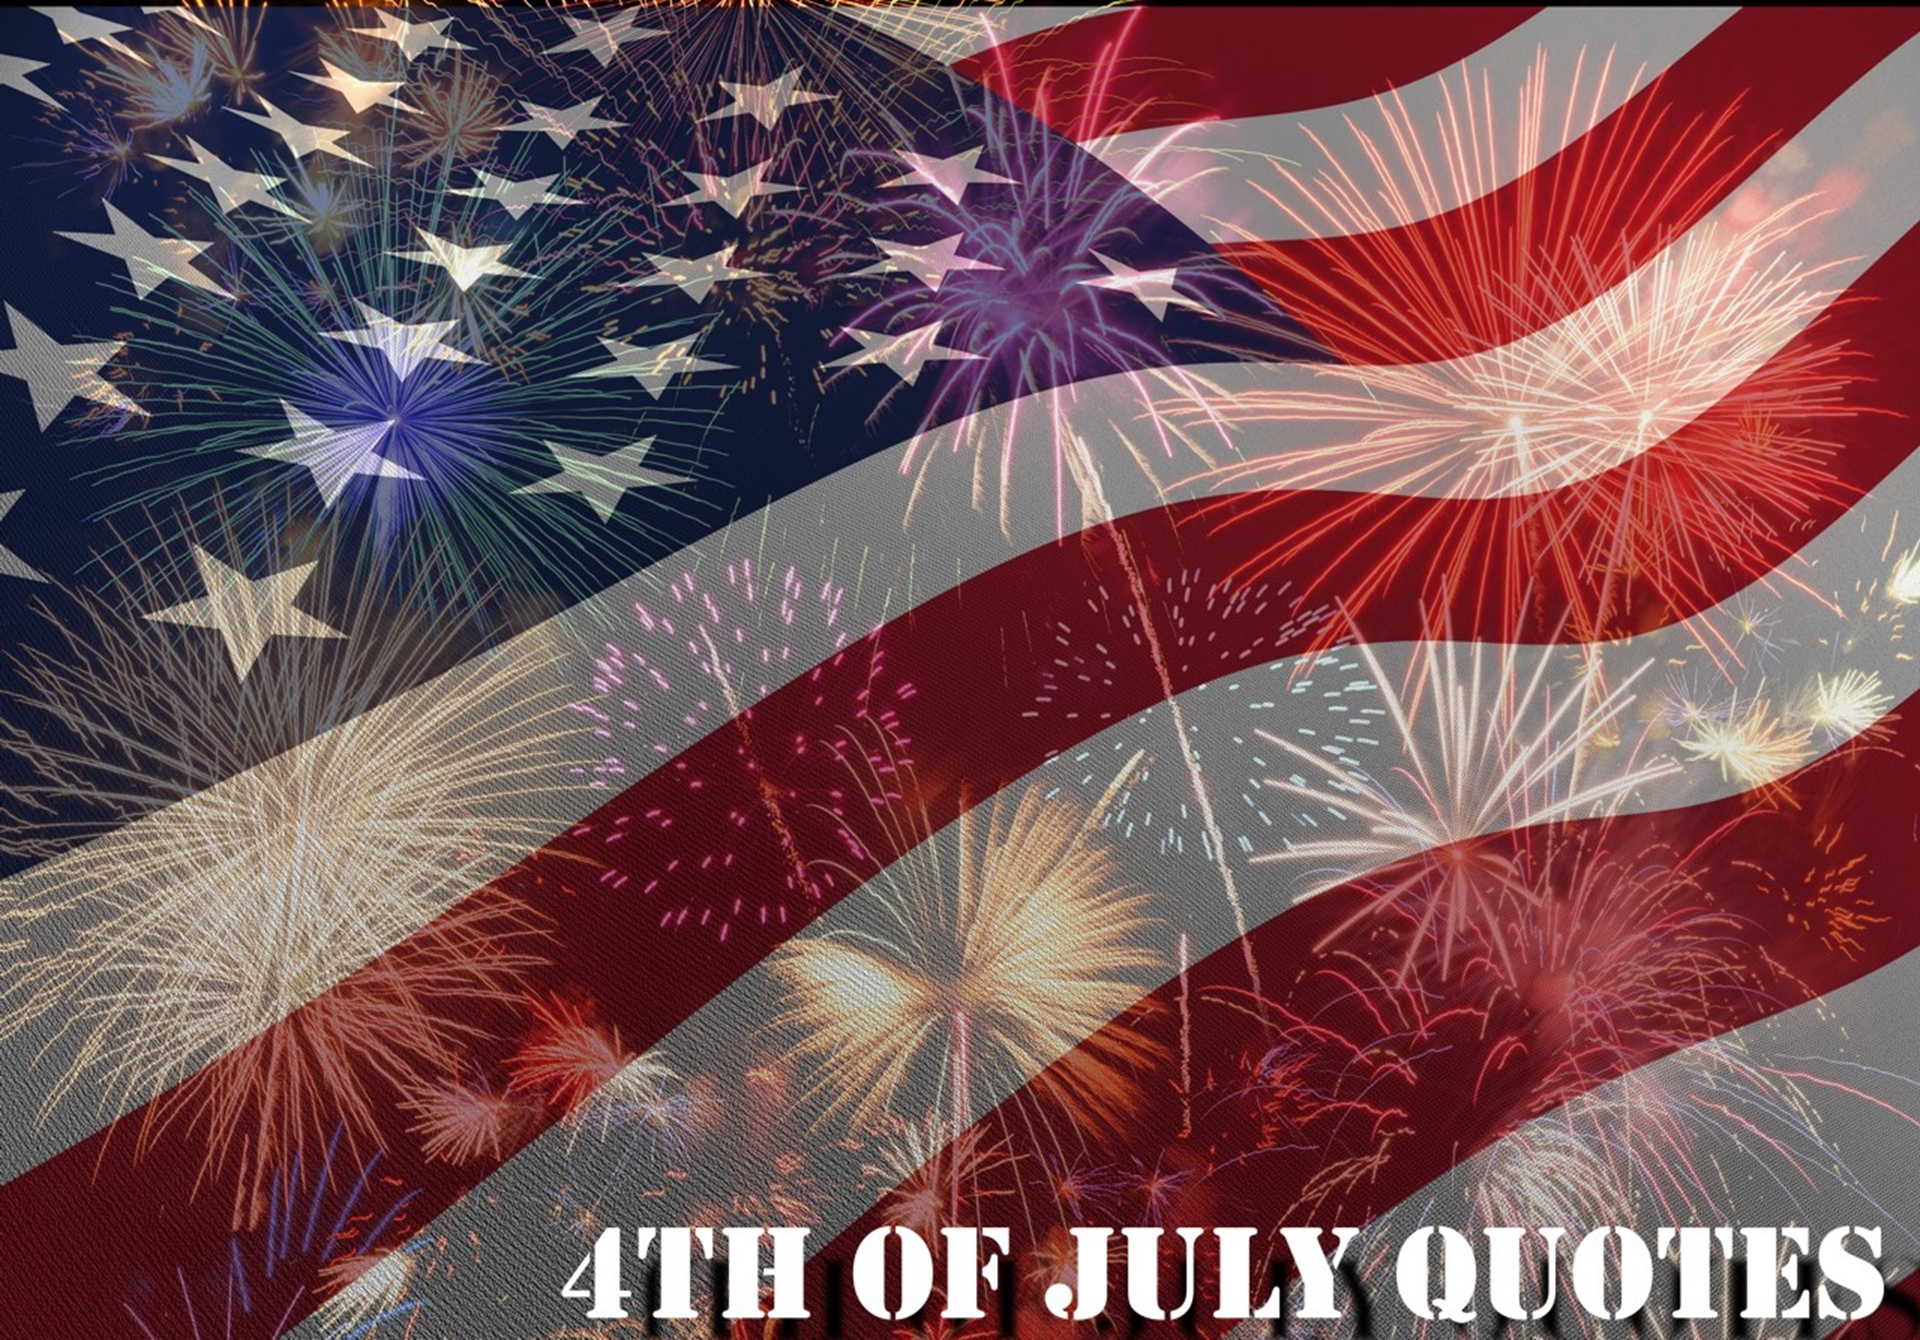 Famous 4th of july quotes